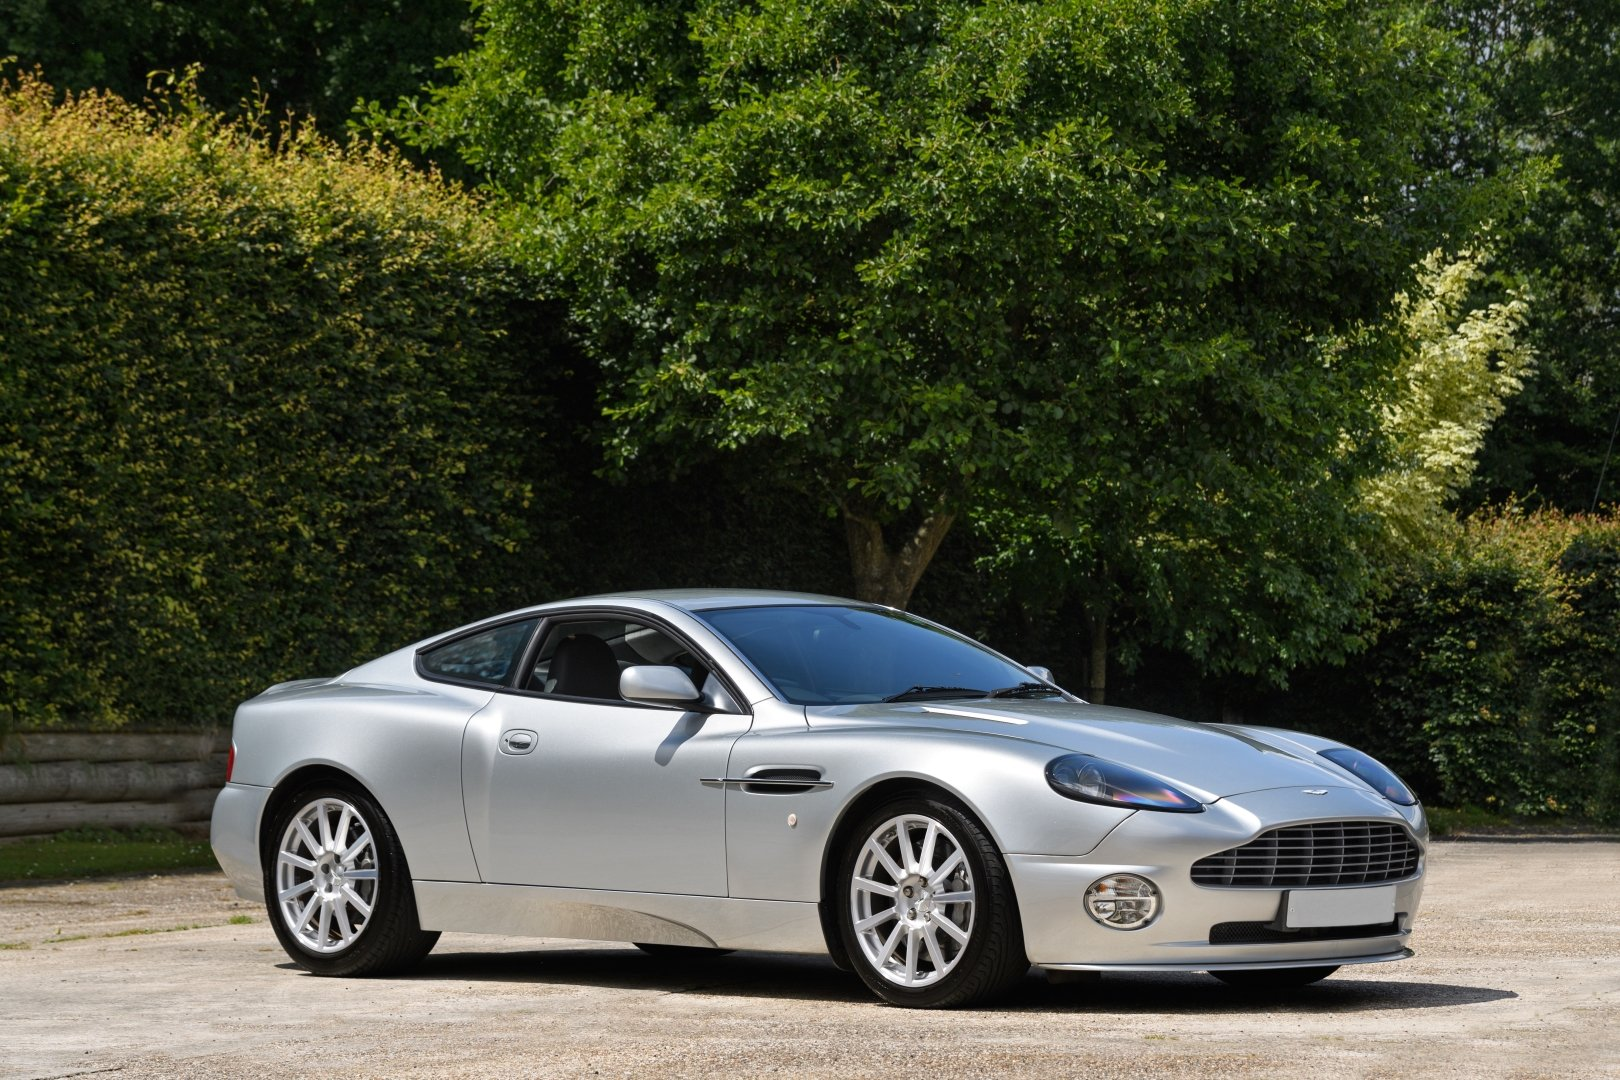 2005 Aston Martin Vanquish S - AM Works 6 Speed Manual  For Sale (picture 1 of 6)